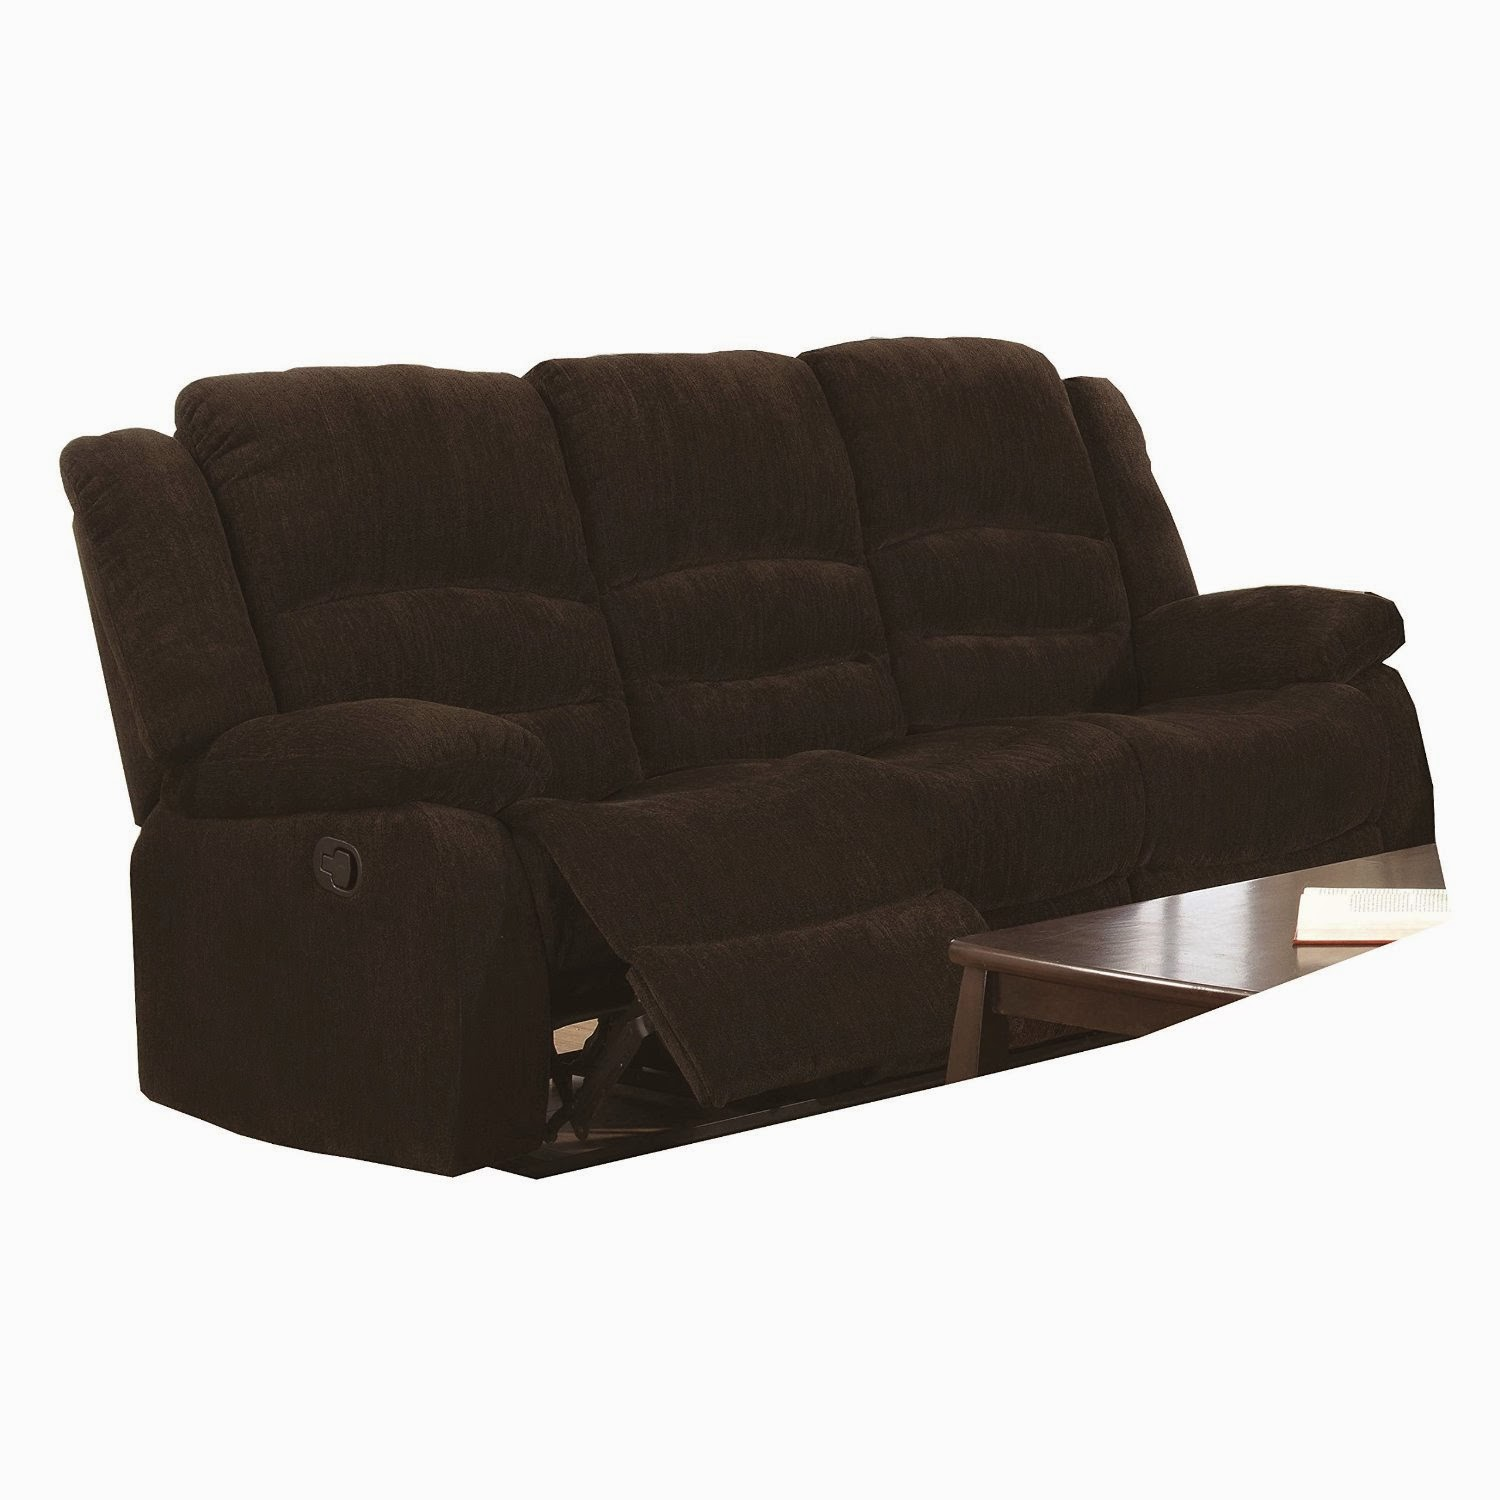 Cheap Recliner Chair Cheap Recliner Sofas For Sale Triple Reclining Sofa Fabric